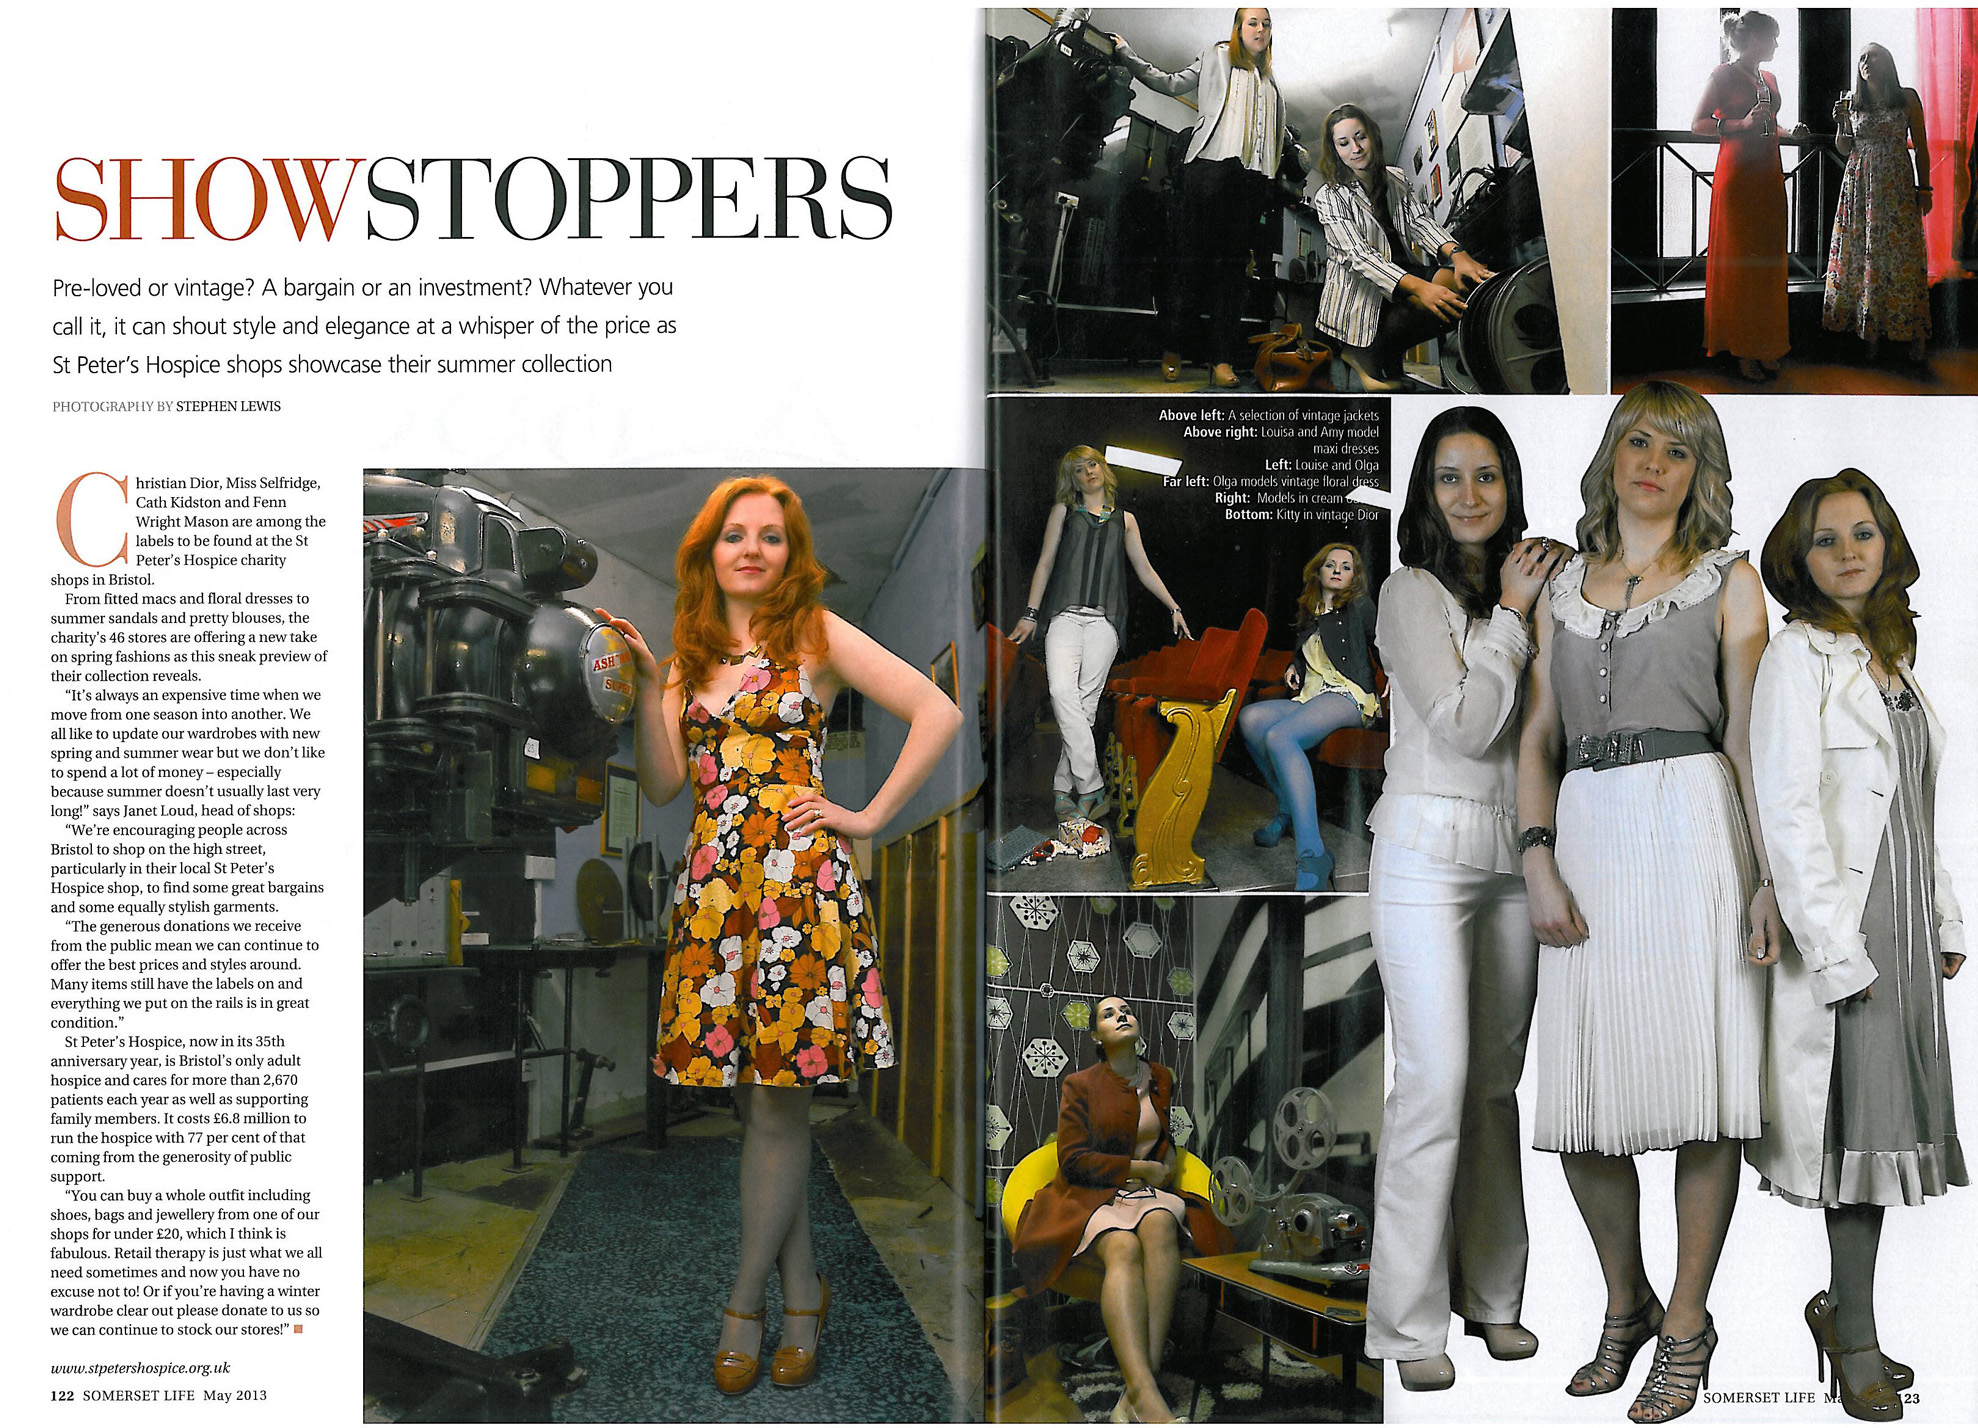 Somerset Life Magazine coverage April 2013